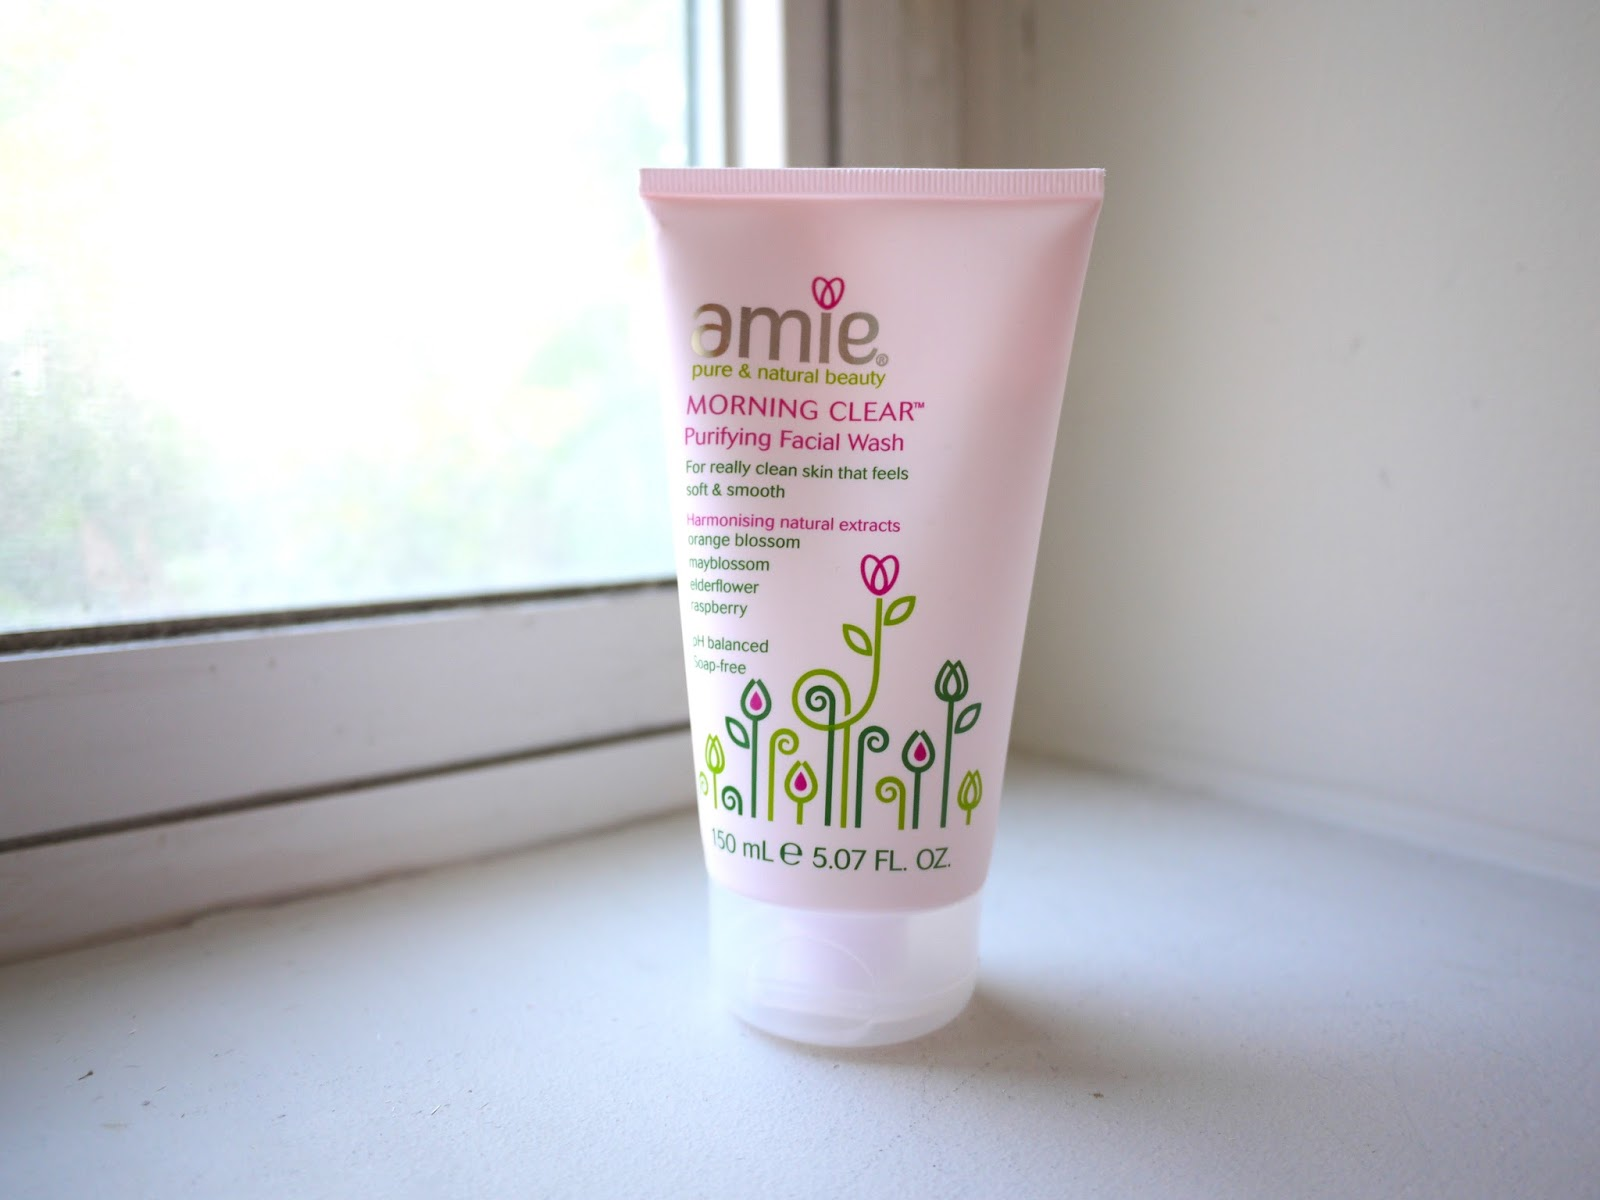 amie skincare morning clear purifying facial wash new bloom gentle facial cleansing wipes review